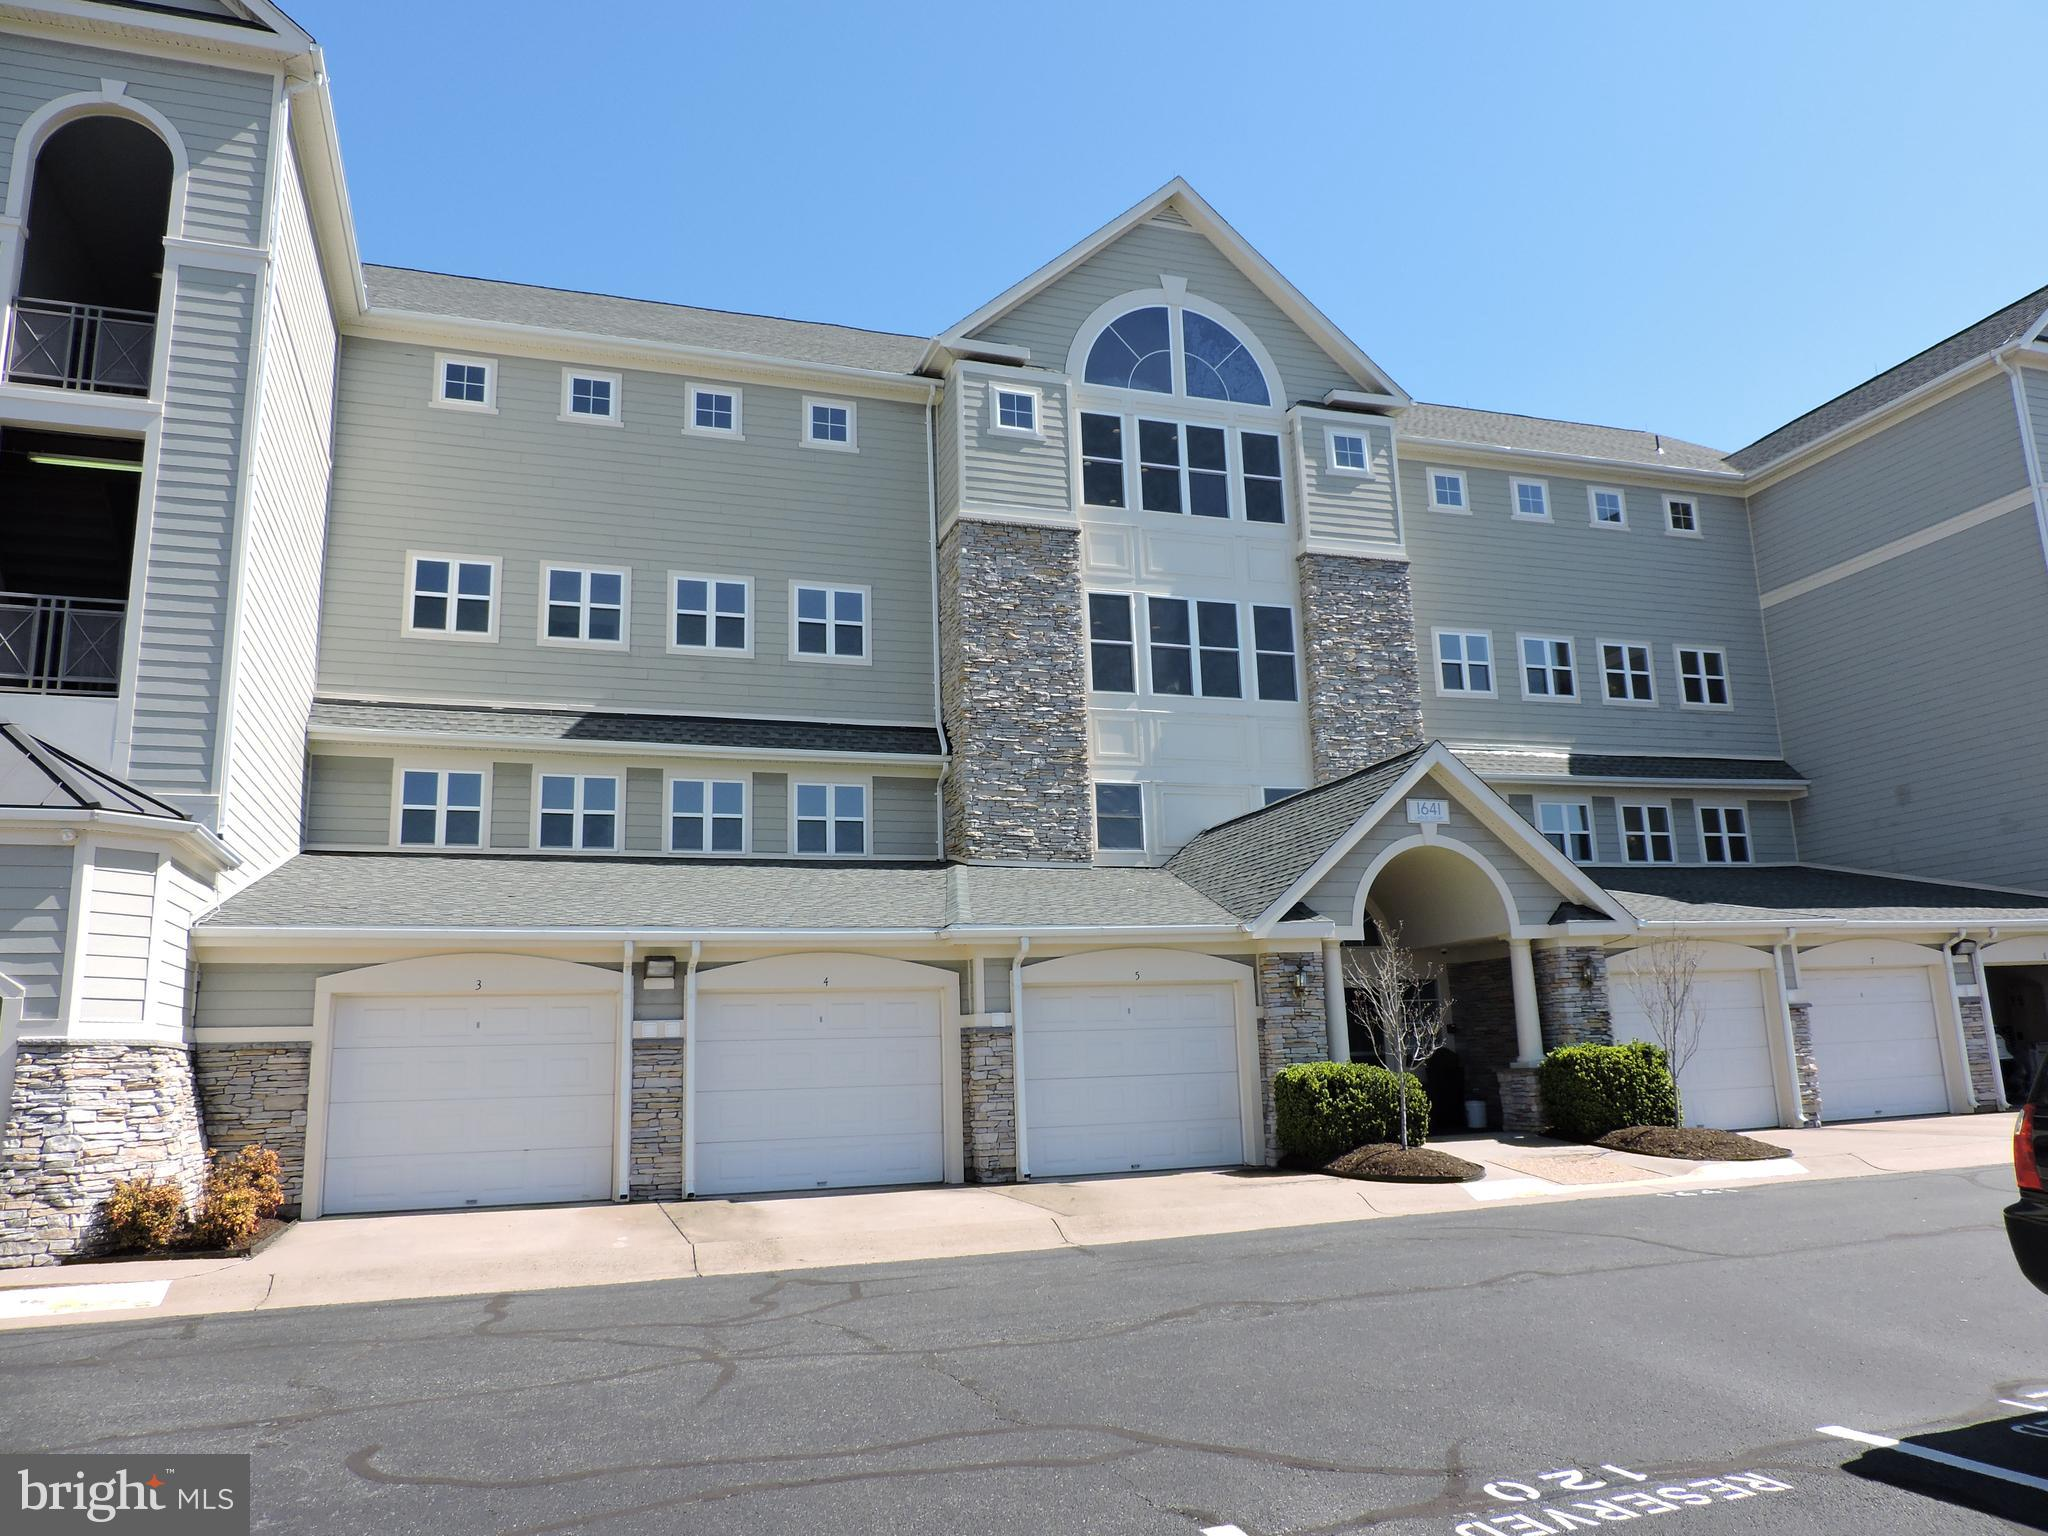 Don't miss out on this sought after condo.  Gated community with all the amenities. VRE commuters this is where you need to be. This unit includes a garage and storage unit- one of the few in the community. Bright open living space within river view. Spacious bedrooms and the master bathe offers a large soaker tub with separate shower anddouble sinks. Huge walk in closet. Gorgeous new wood floors in the living area and new carpets in the bedrooms. The kitchen features stainless appliances, granite counters and custom backslash.